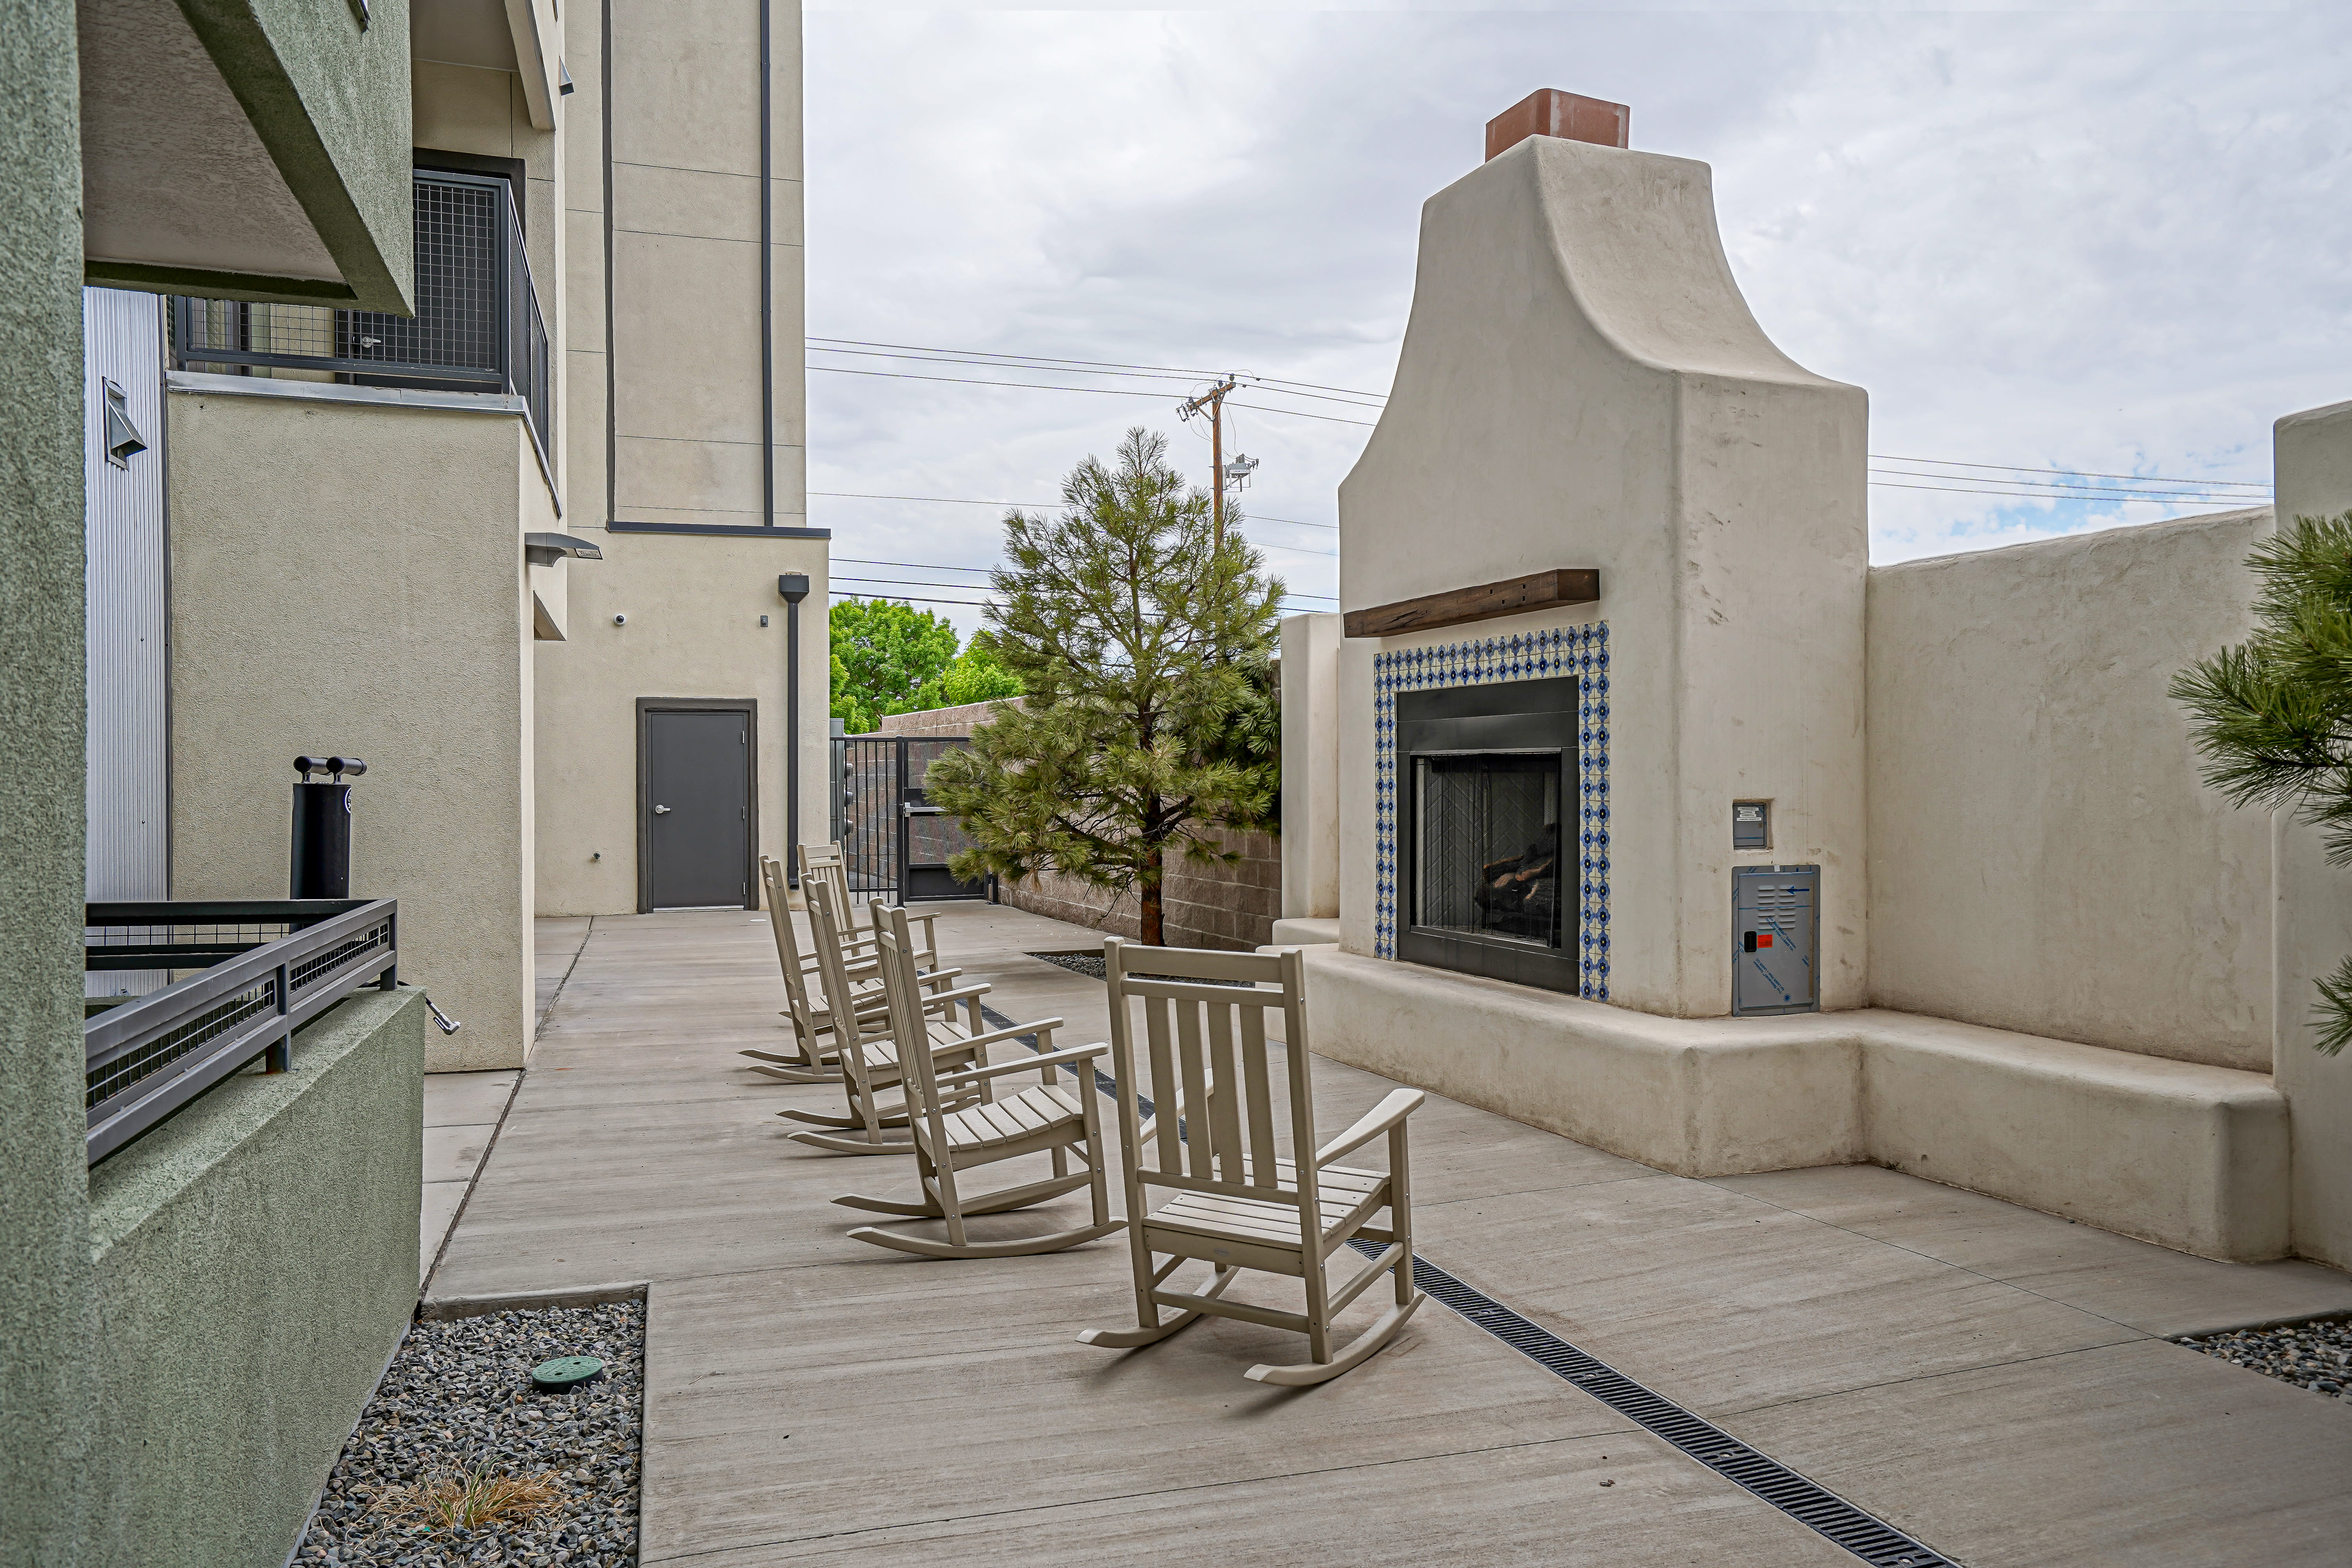 Outdoor patio seating with a fireplace at Capitol Flats in Santa Fe, New Mexico